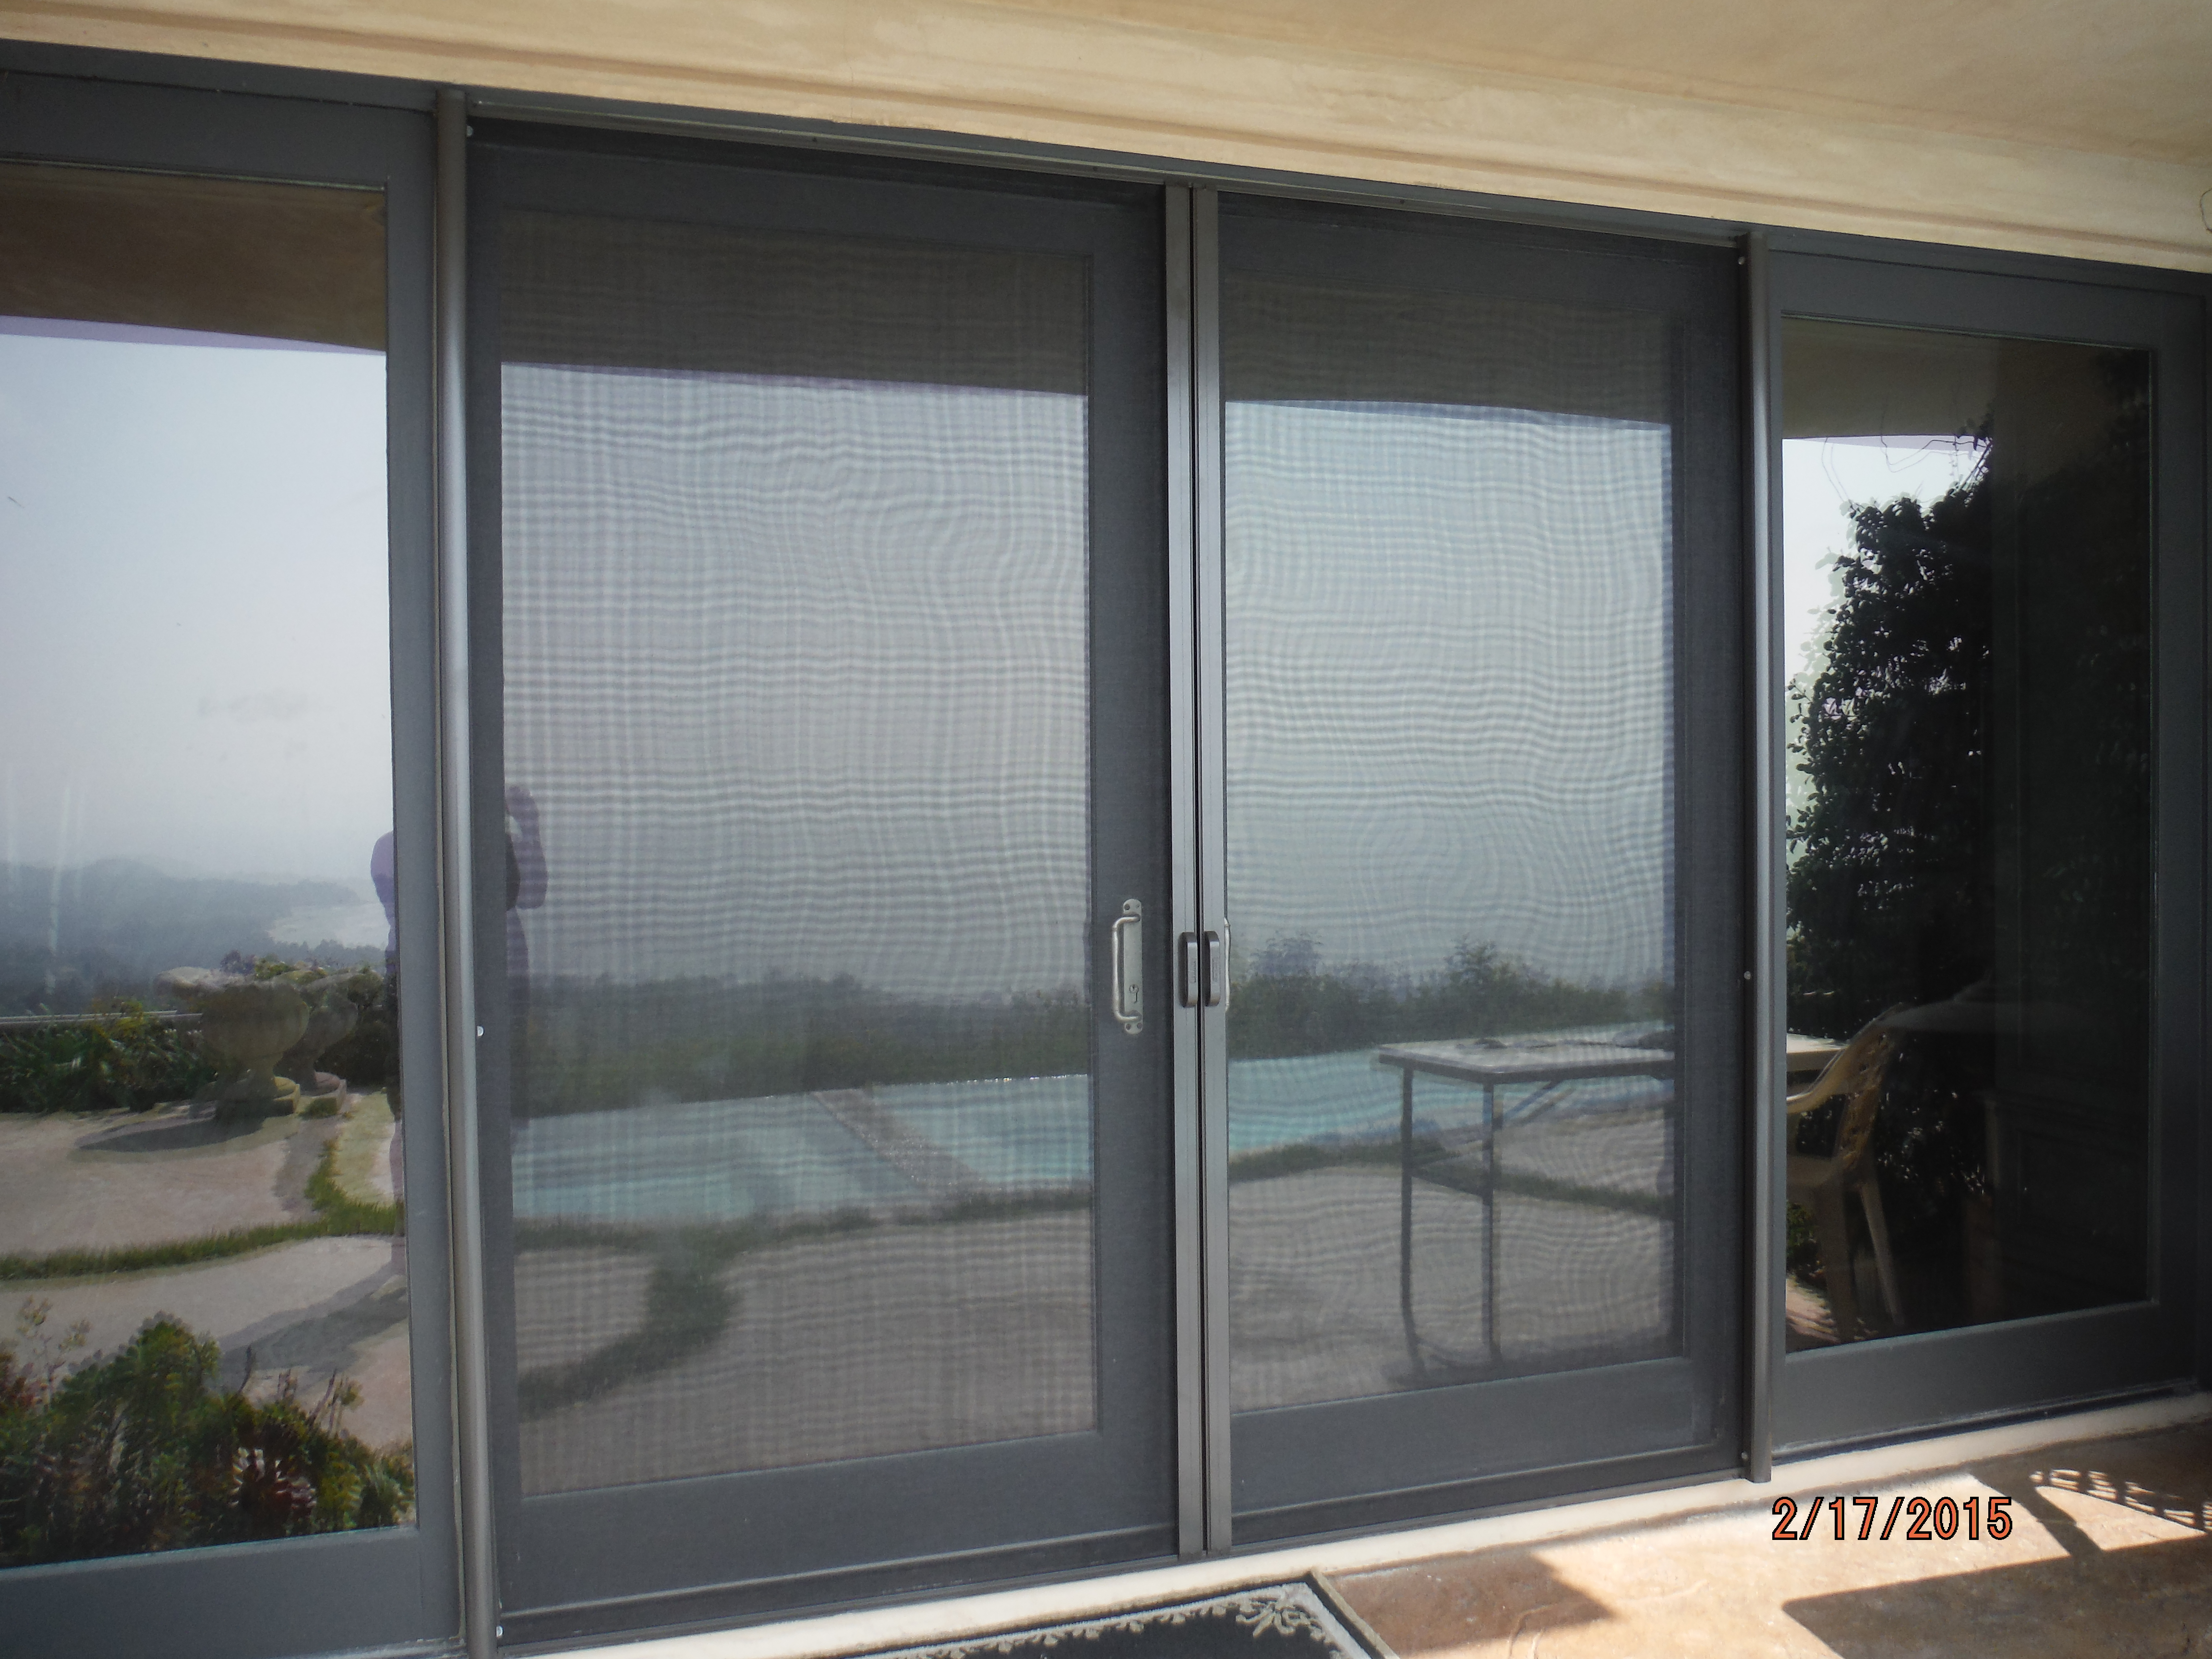 Double Set Disappearing Screen Doors installed in Malibu